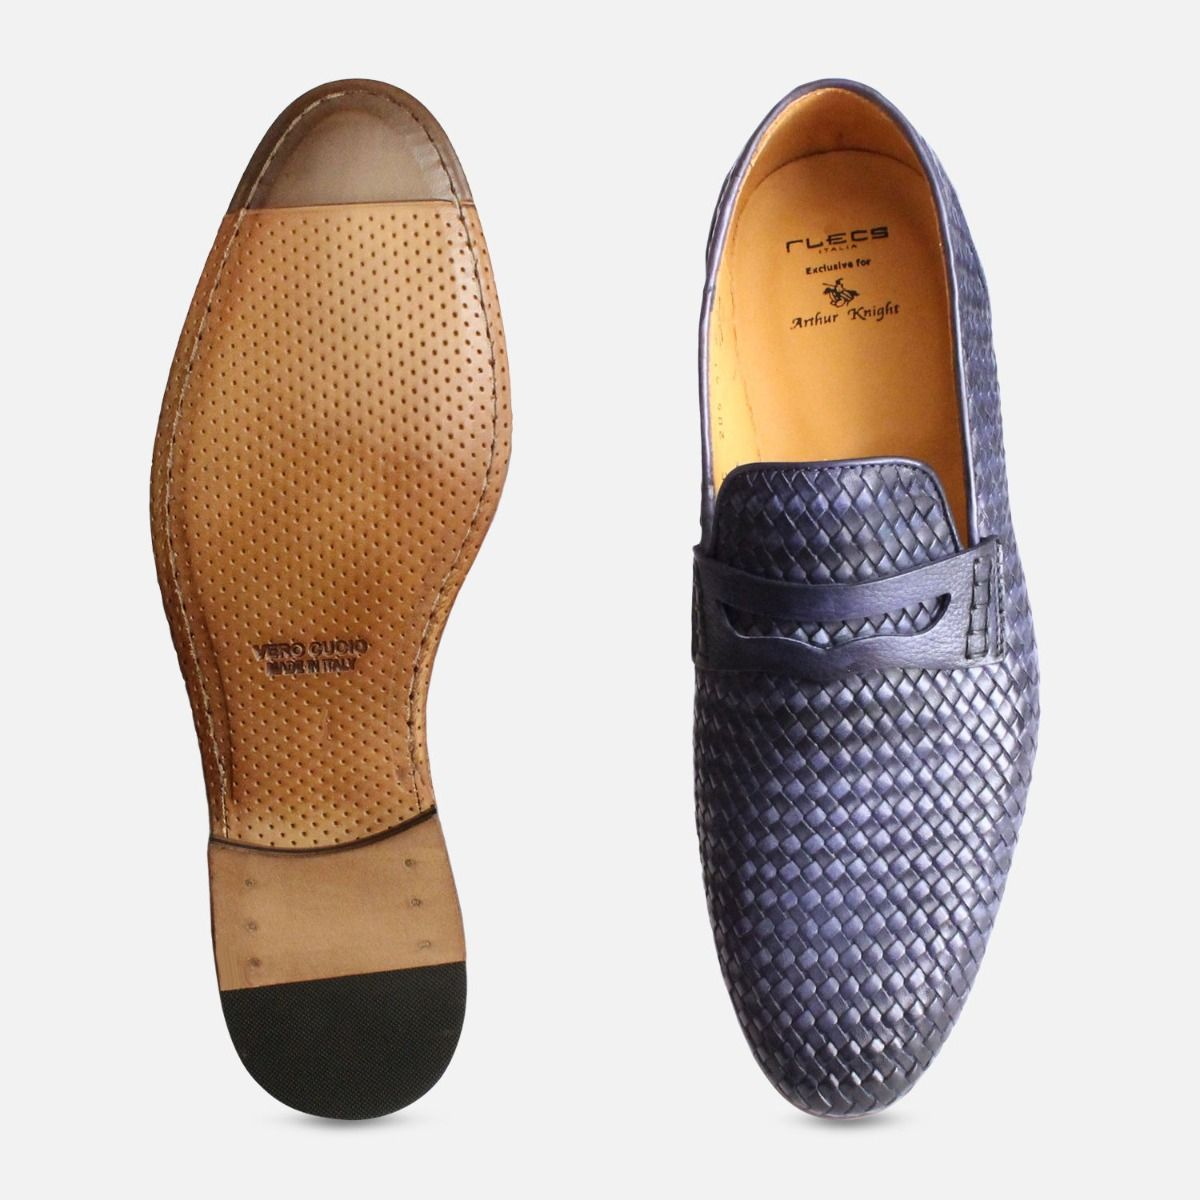 Weave Loafers in Navy Blue by Arthur Knight